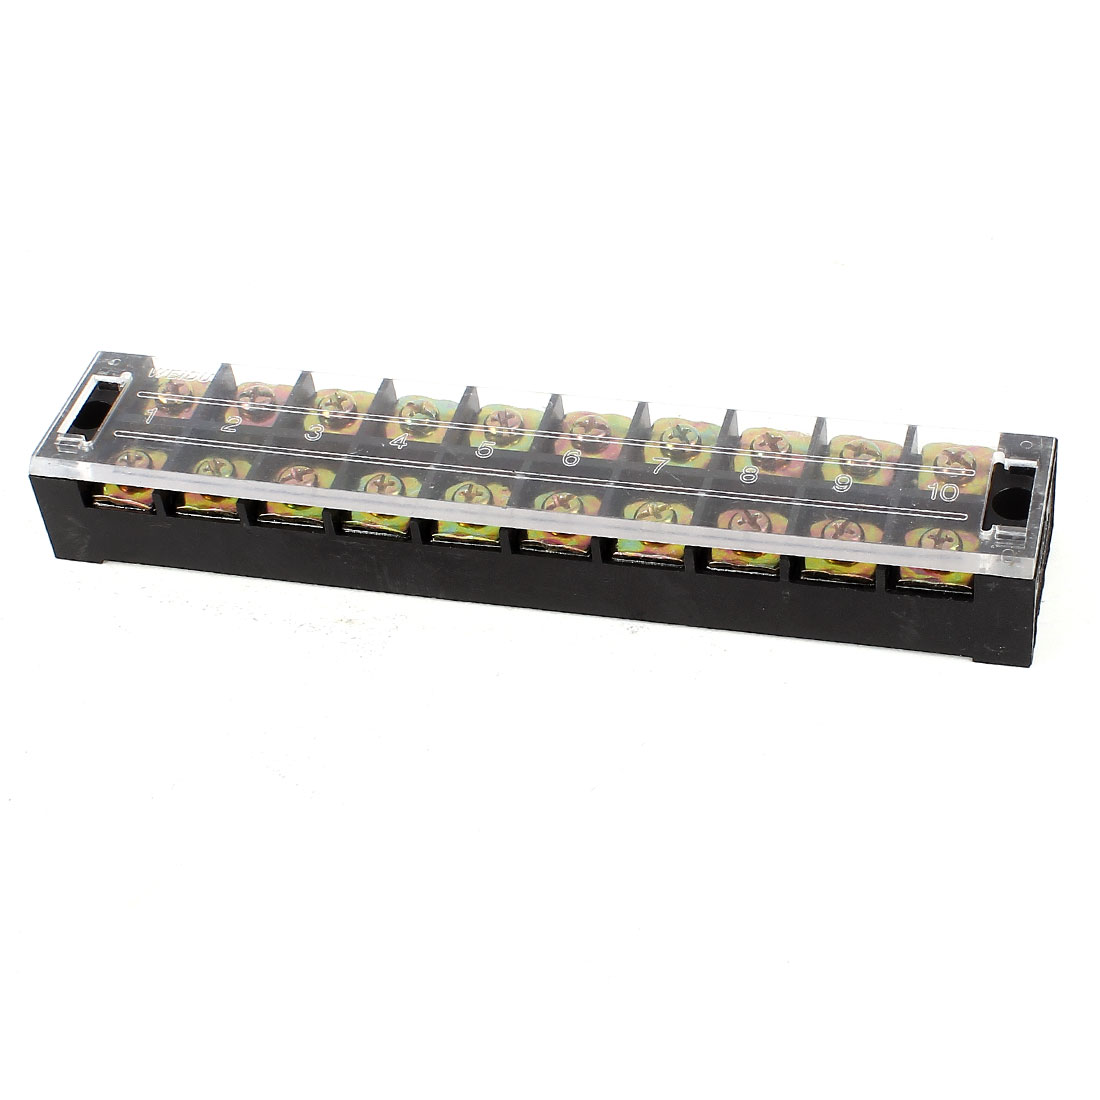 AC 600V 45A 10 Positions Dual Rows Covered Barrier Screw Terminal Block Strip